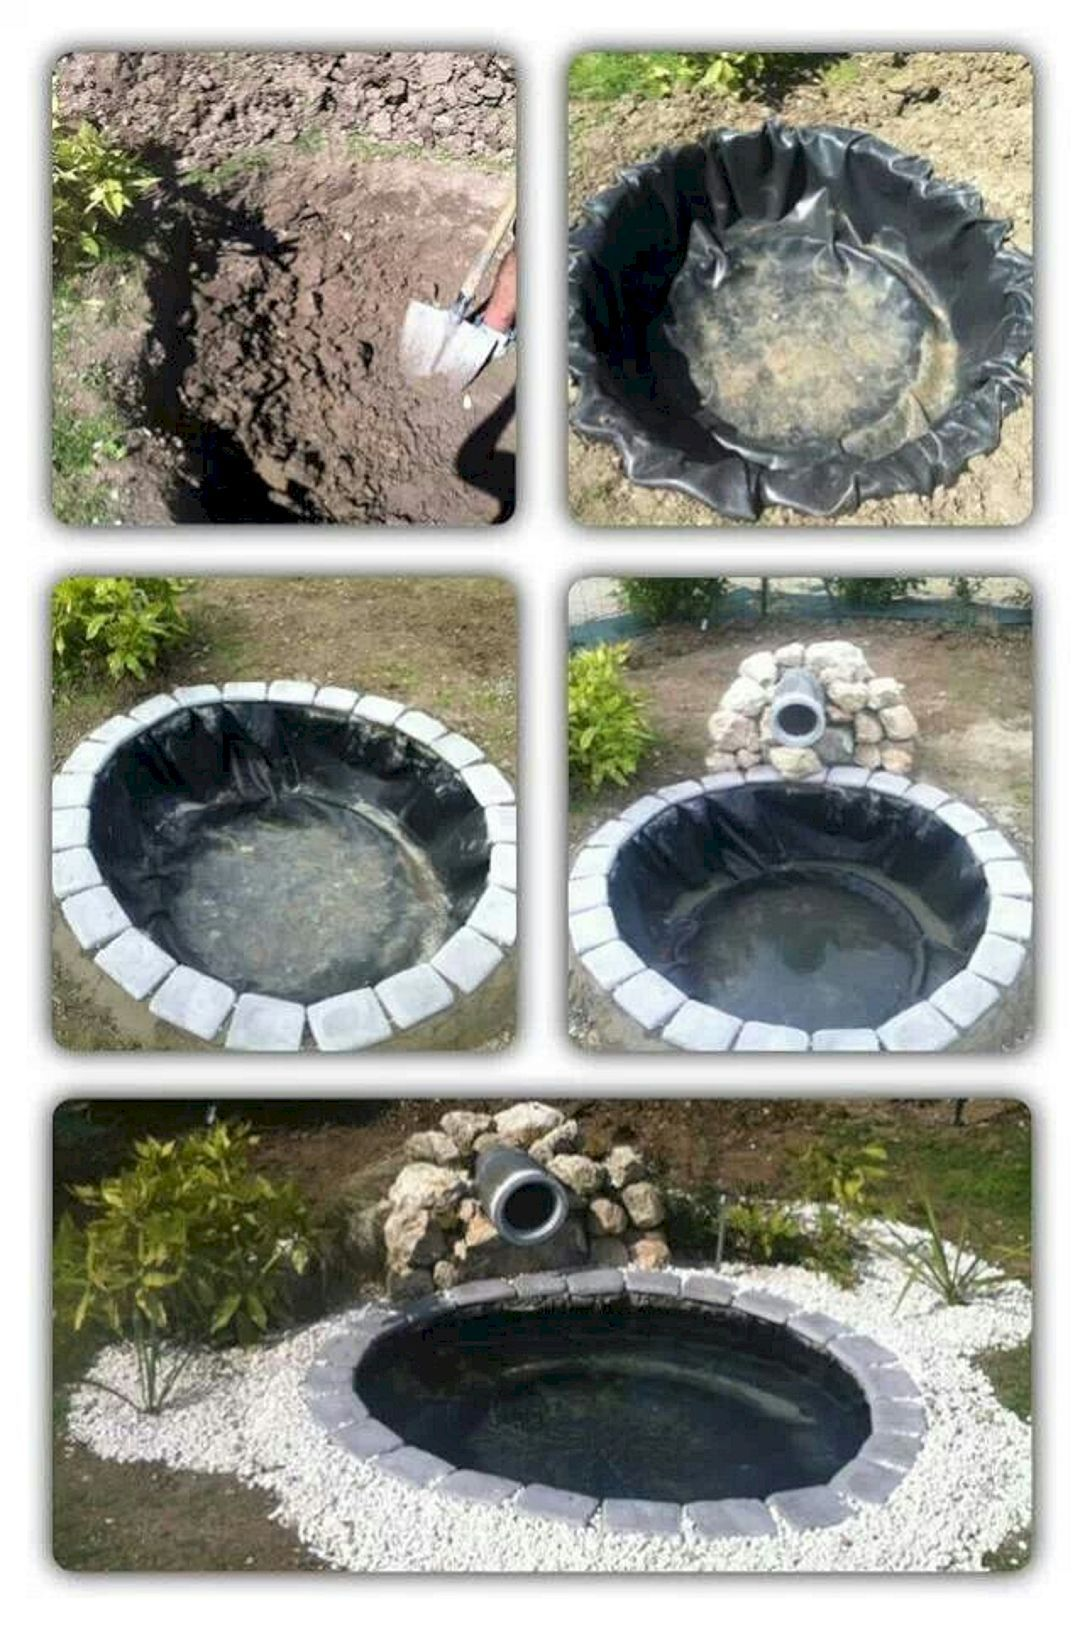 10 DIY Wonderful Tire Garden Ponds On a Budget Inspirations / FresHOUZ.com